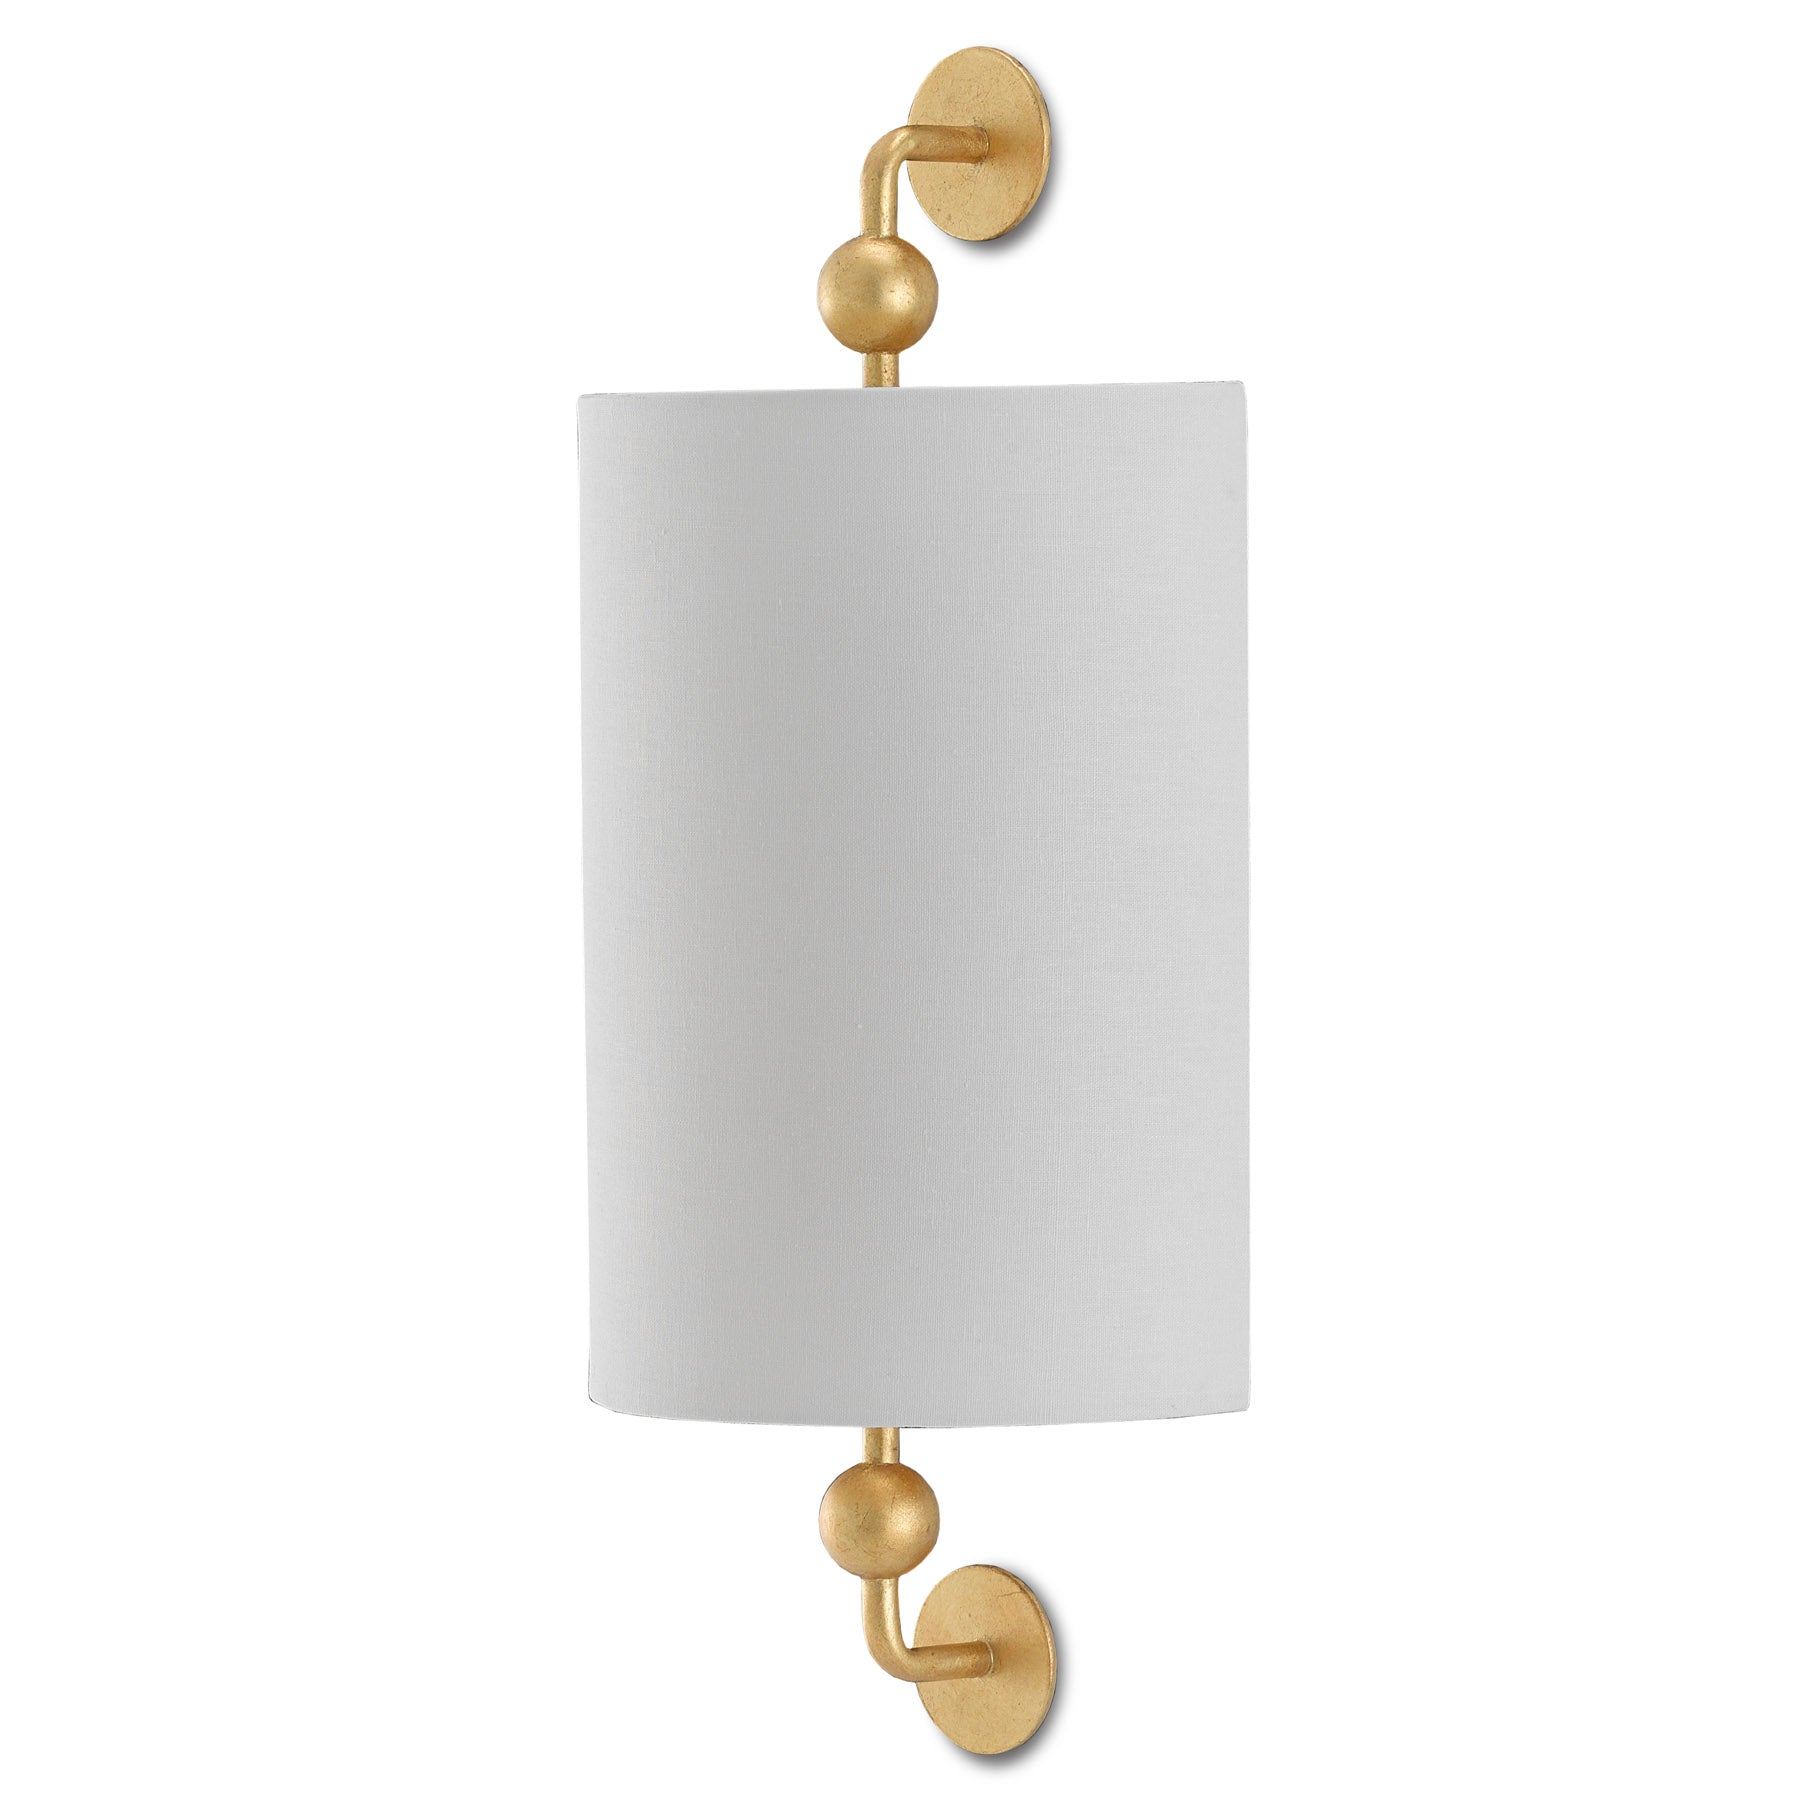 Tavey Gold Wall Sconce